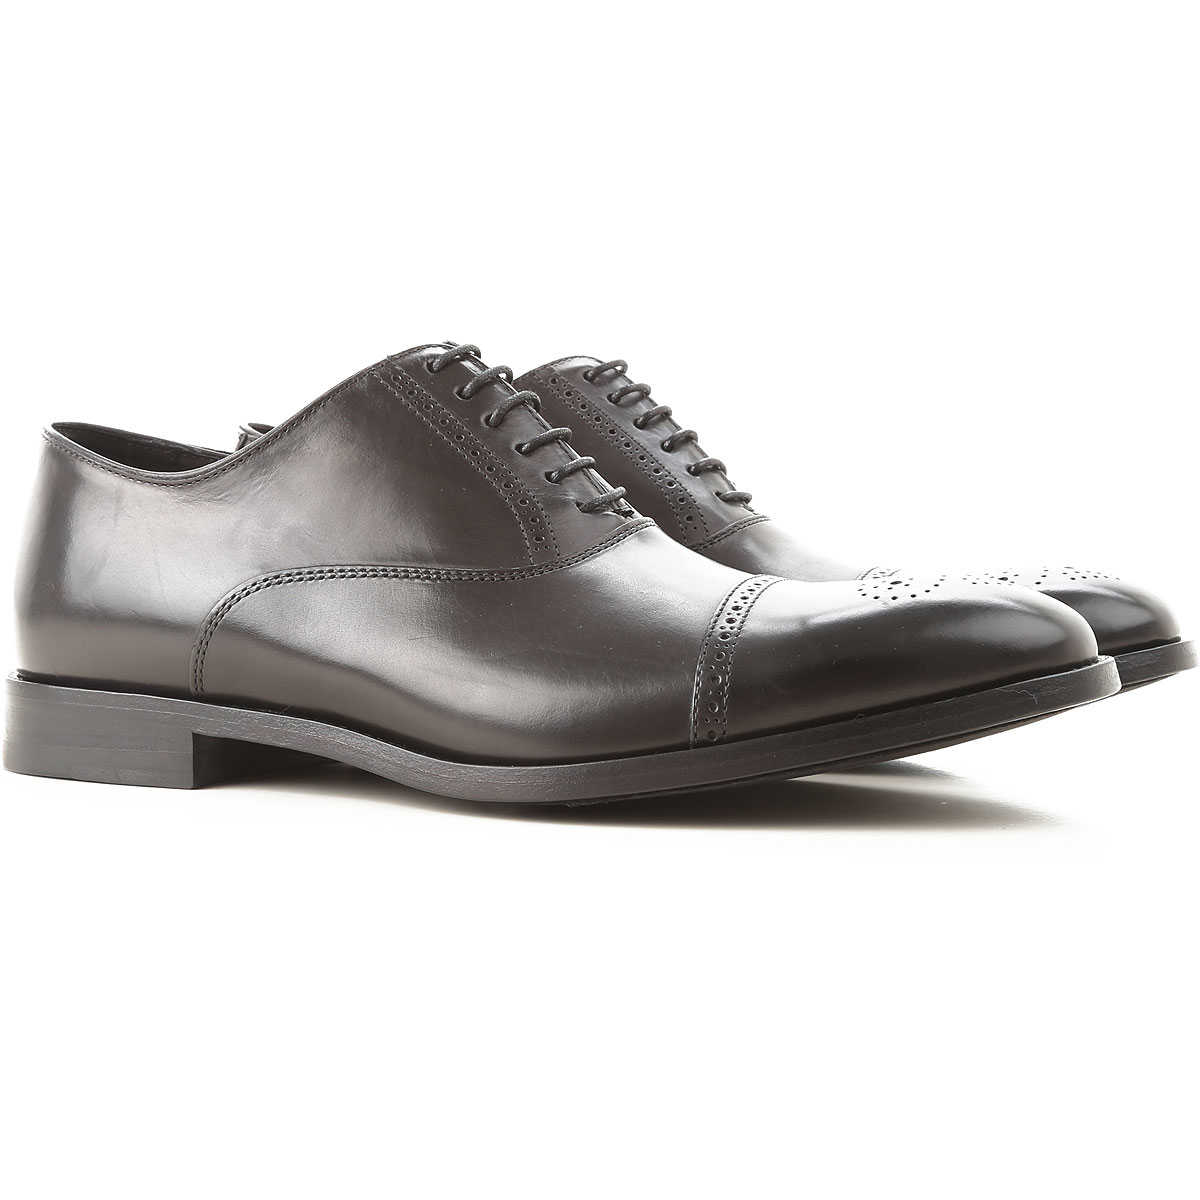 Paul Smith Lace Up Shoes for Men Oxfords Derbies and Brogues On Sale SE - GOOFASH